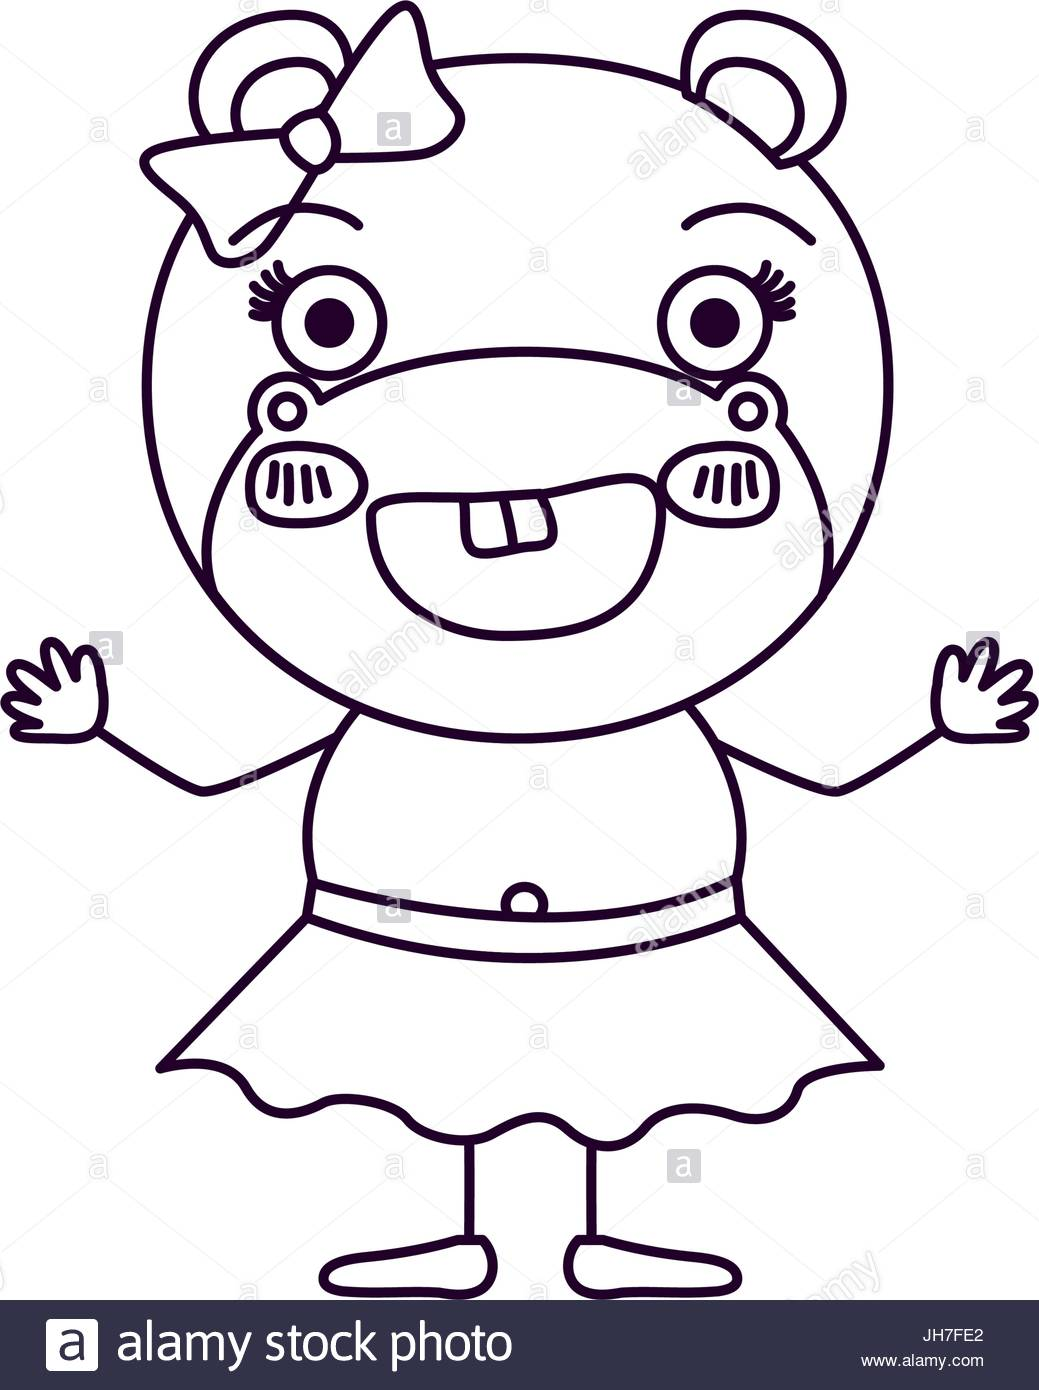 1039x1390 Sketch Silhouette Caricature Of Female Hippo In Skirt With Bow